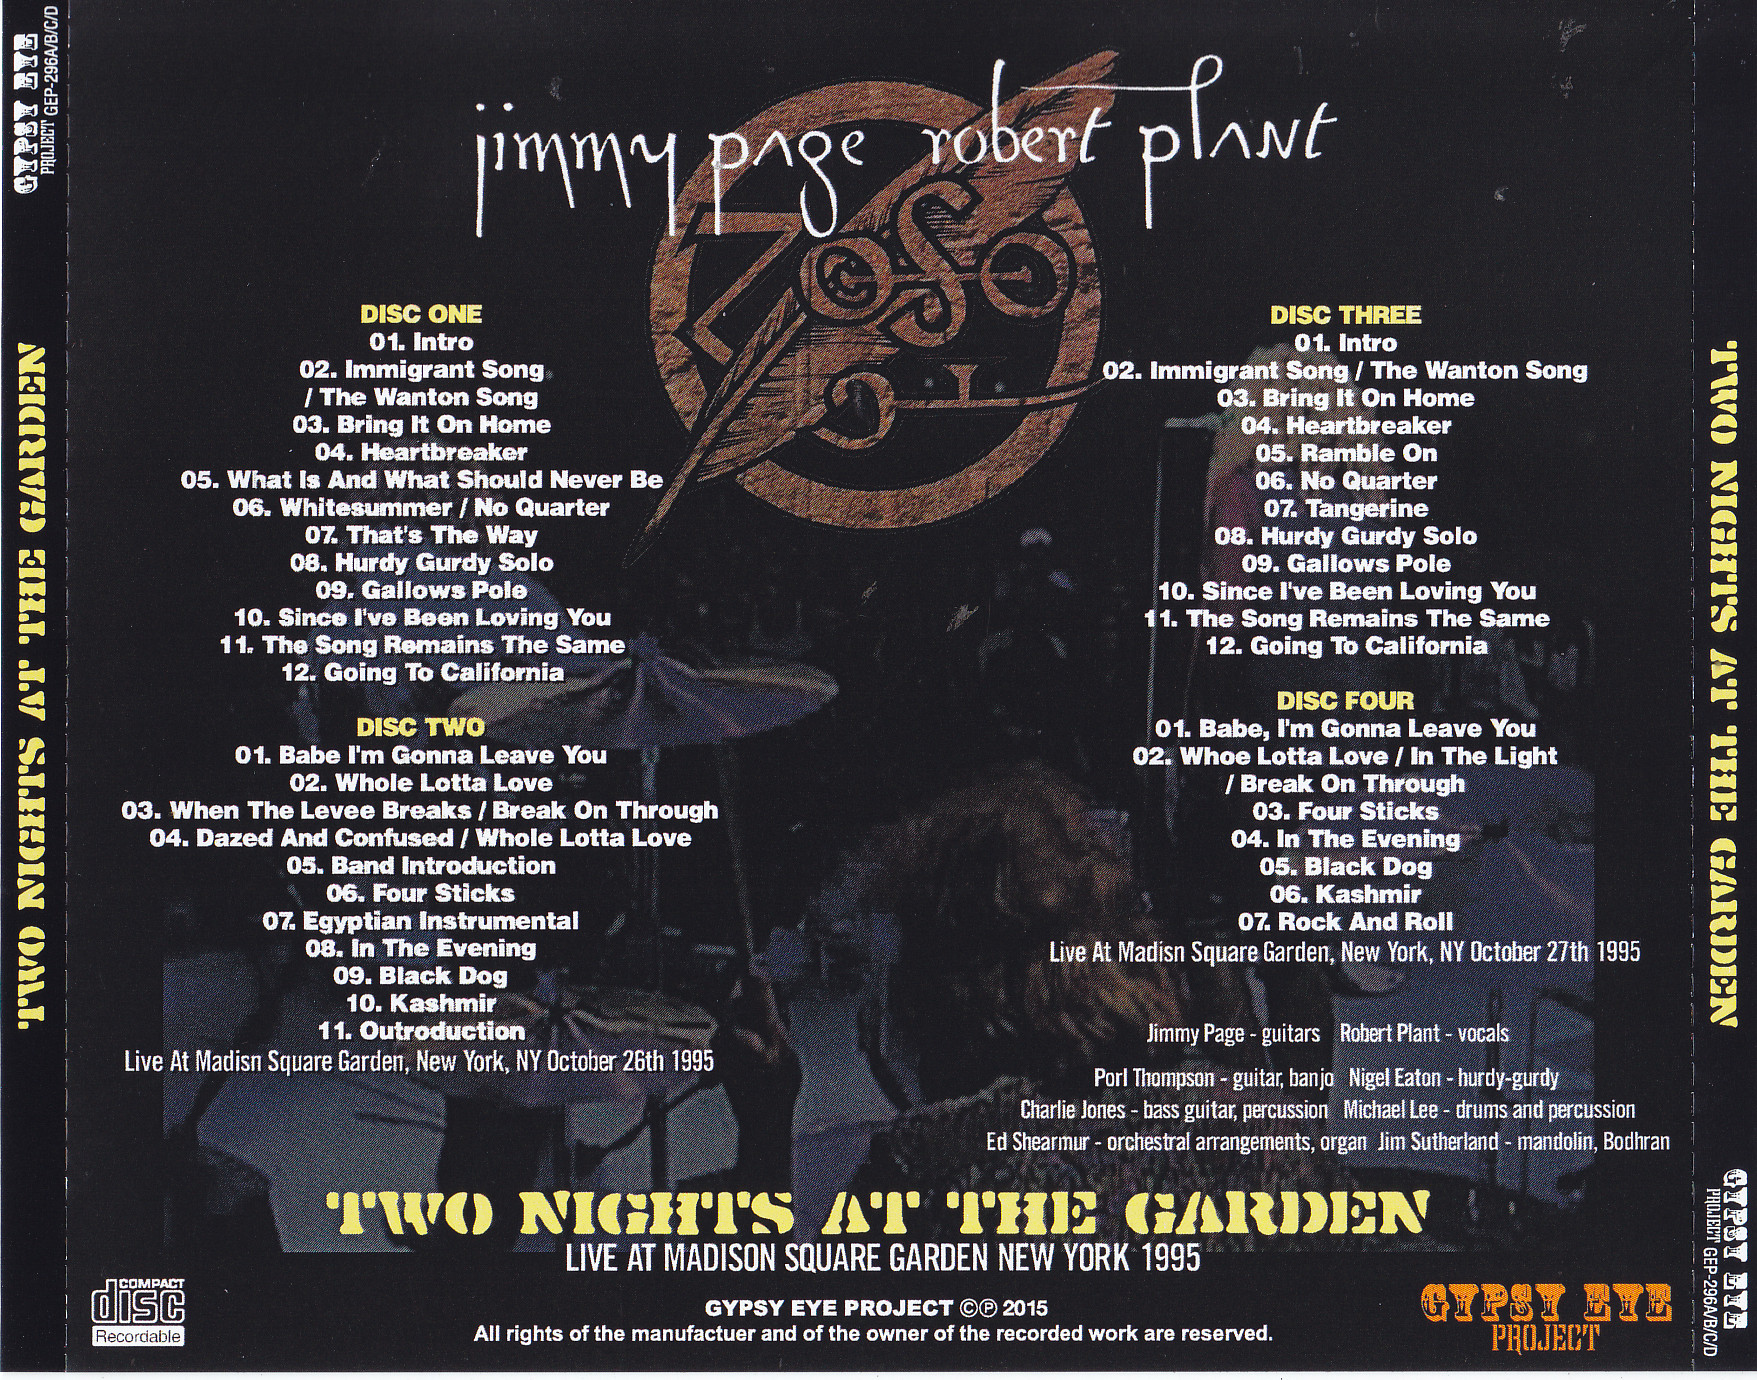 Jimmy Page & Robert Plant - Two Nights At The Garden (4Pro-CDR) Gypsy Eye  Project  GEP-296A/B/C/D